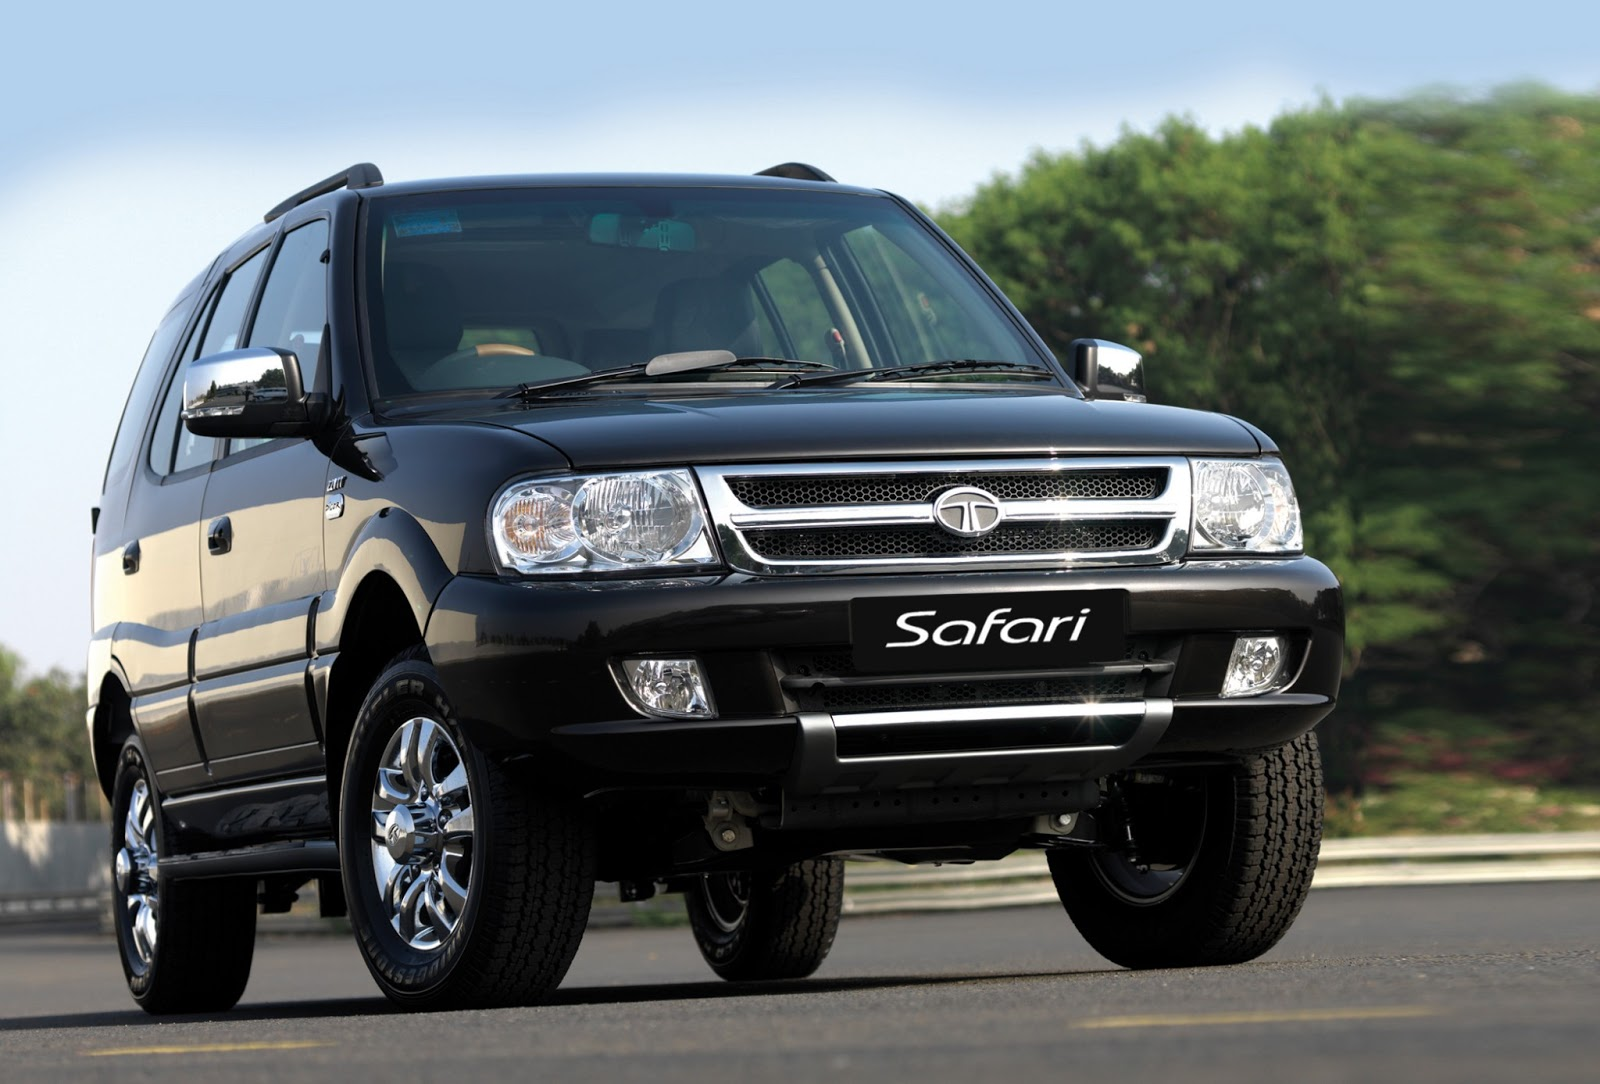 Tata Safari 2018 >> Top Cars Zone: Tata Safari Black Car Picture